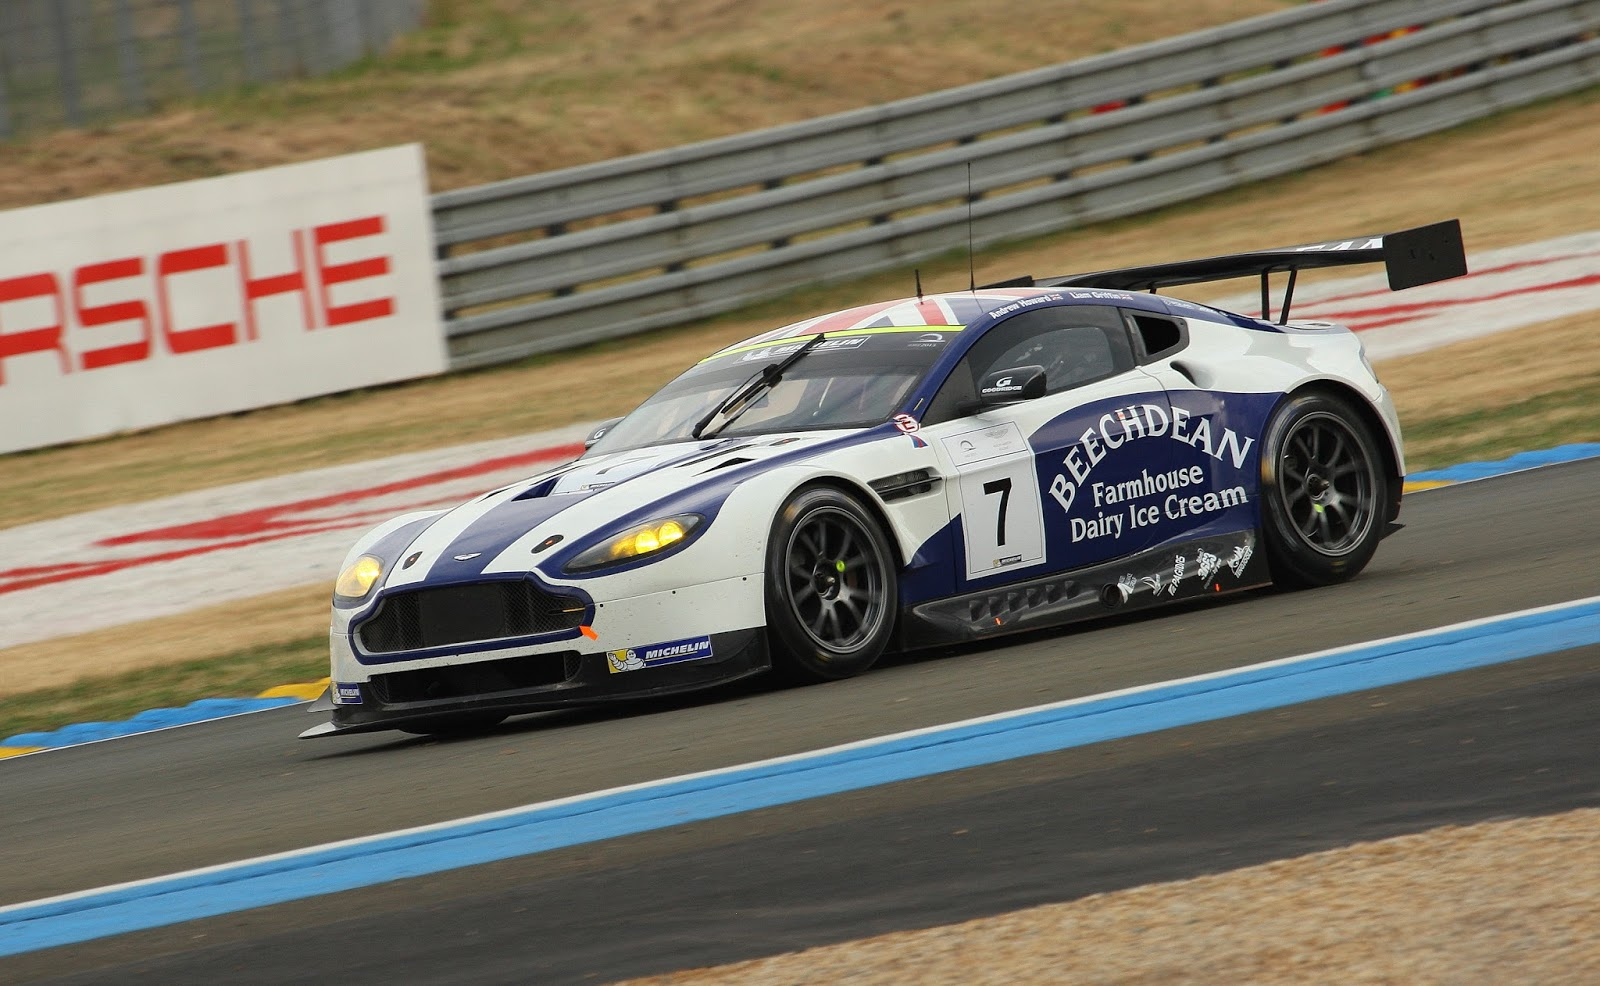 aston martin racing busy in portugal the advantage. Black Bedroom Furniture Sets. Home Design Ideas